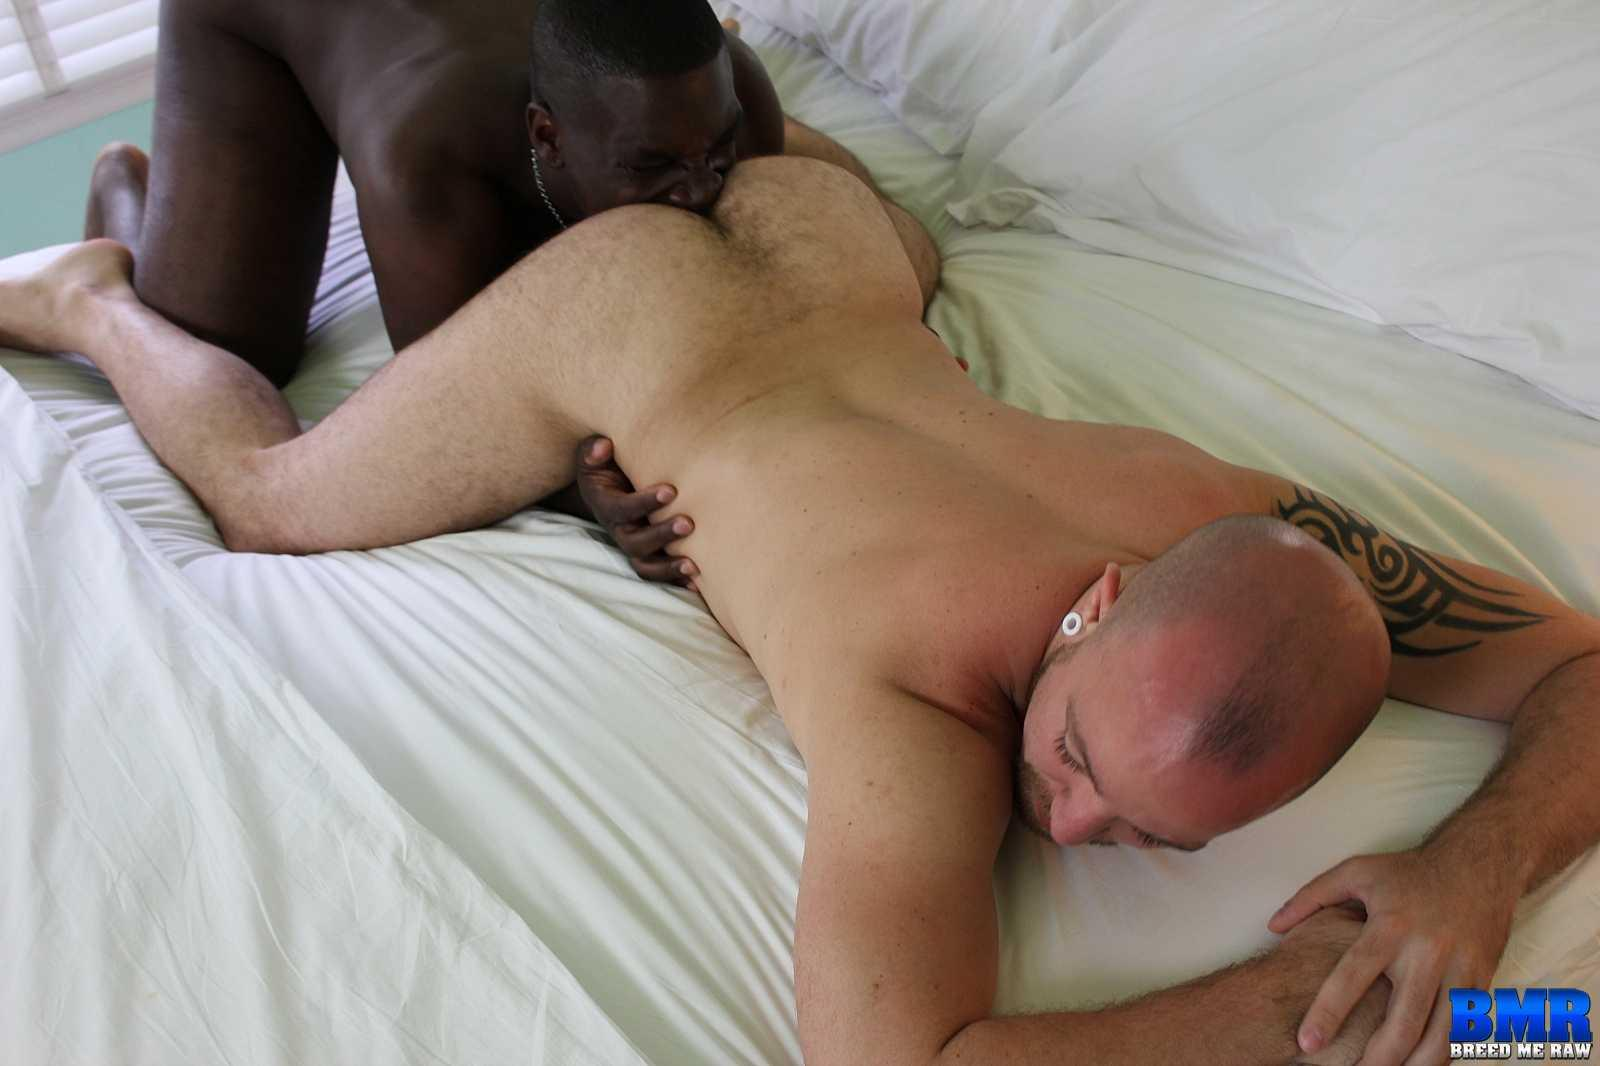 Breed-Me-Raw-Daemon-Sadi-and-Lex-Antoine-Interracial-Bareback-Fucking-Big-Black-Cock-Amateur-Gay-Porn-06 Amateur Interracial Bareback Flip Flop Fucking With Huge Uncut Cocks